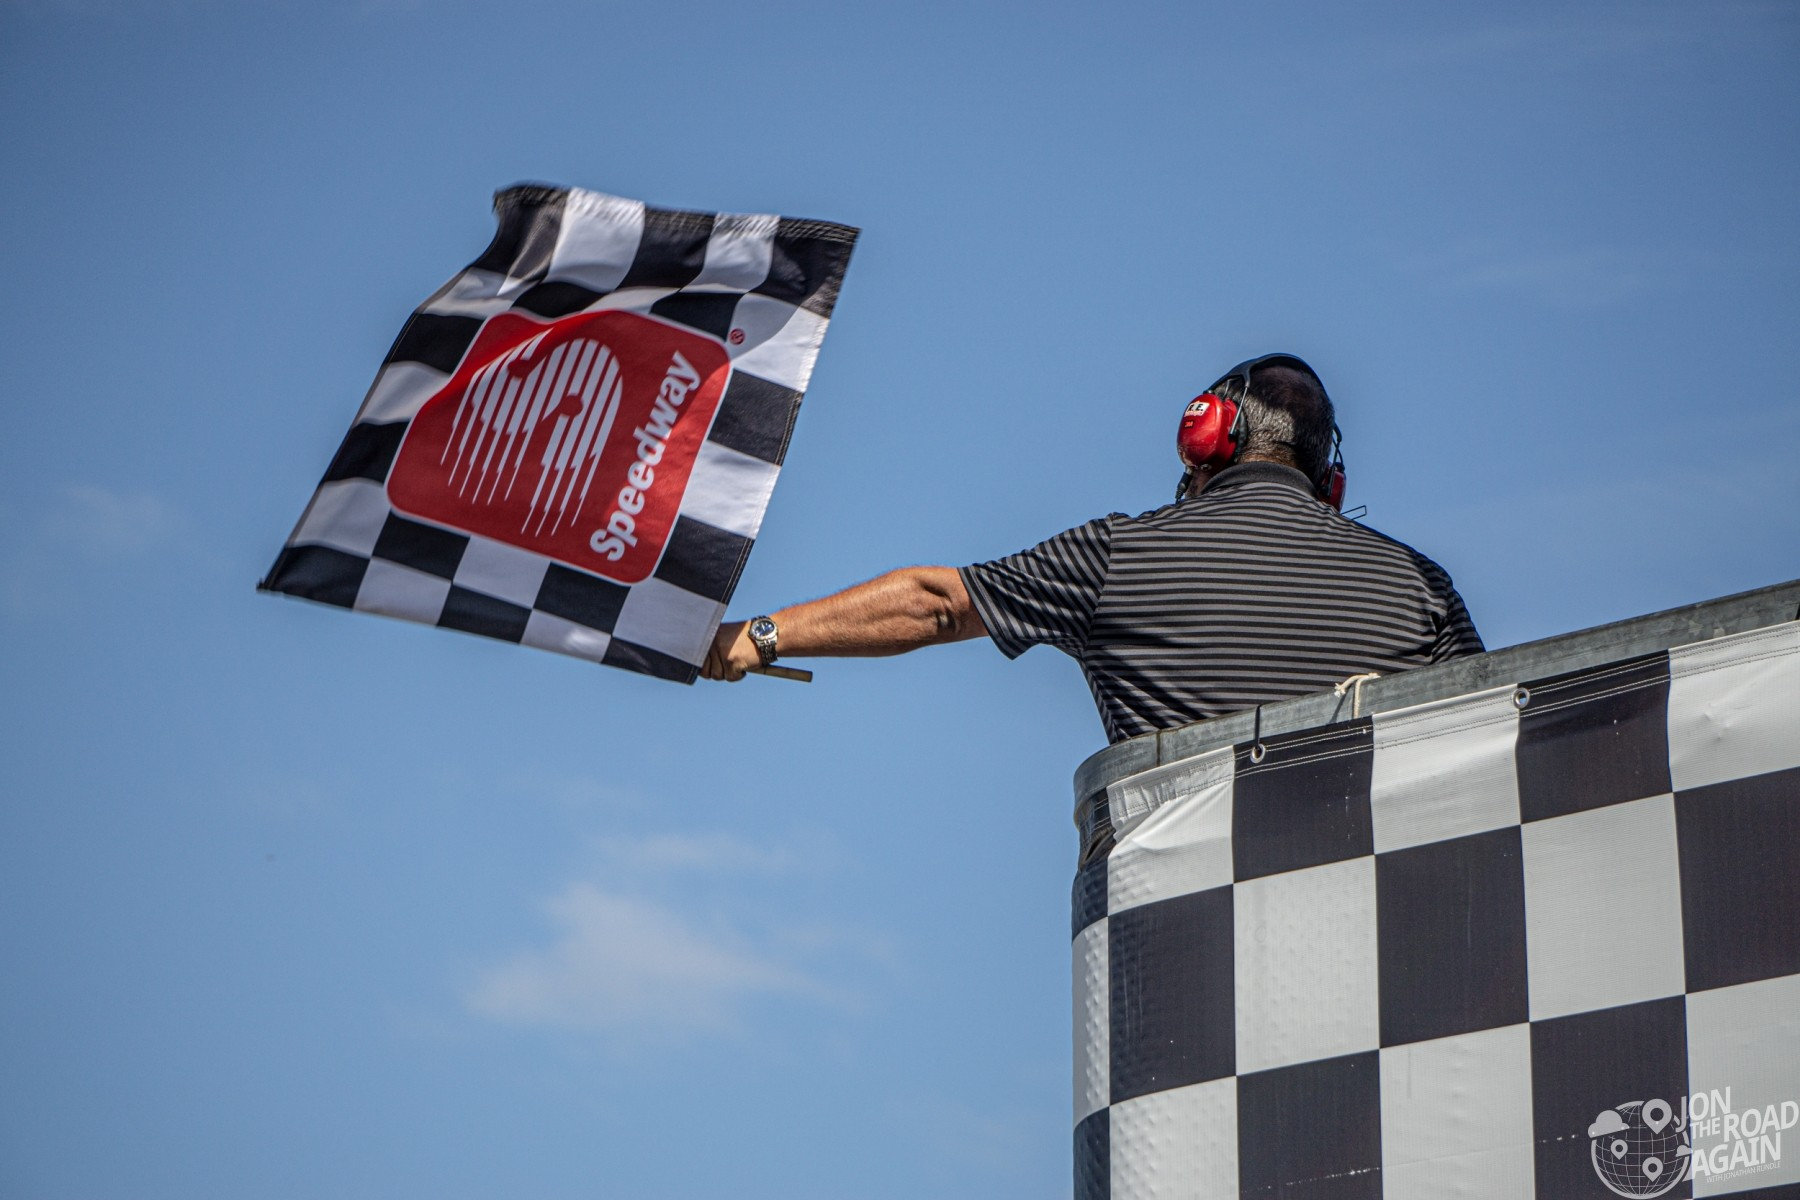 Grand Prix of Portland checkered flag